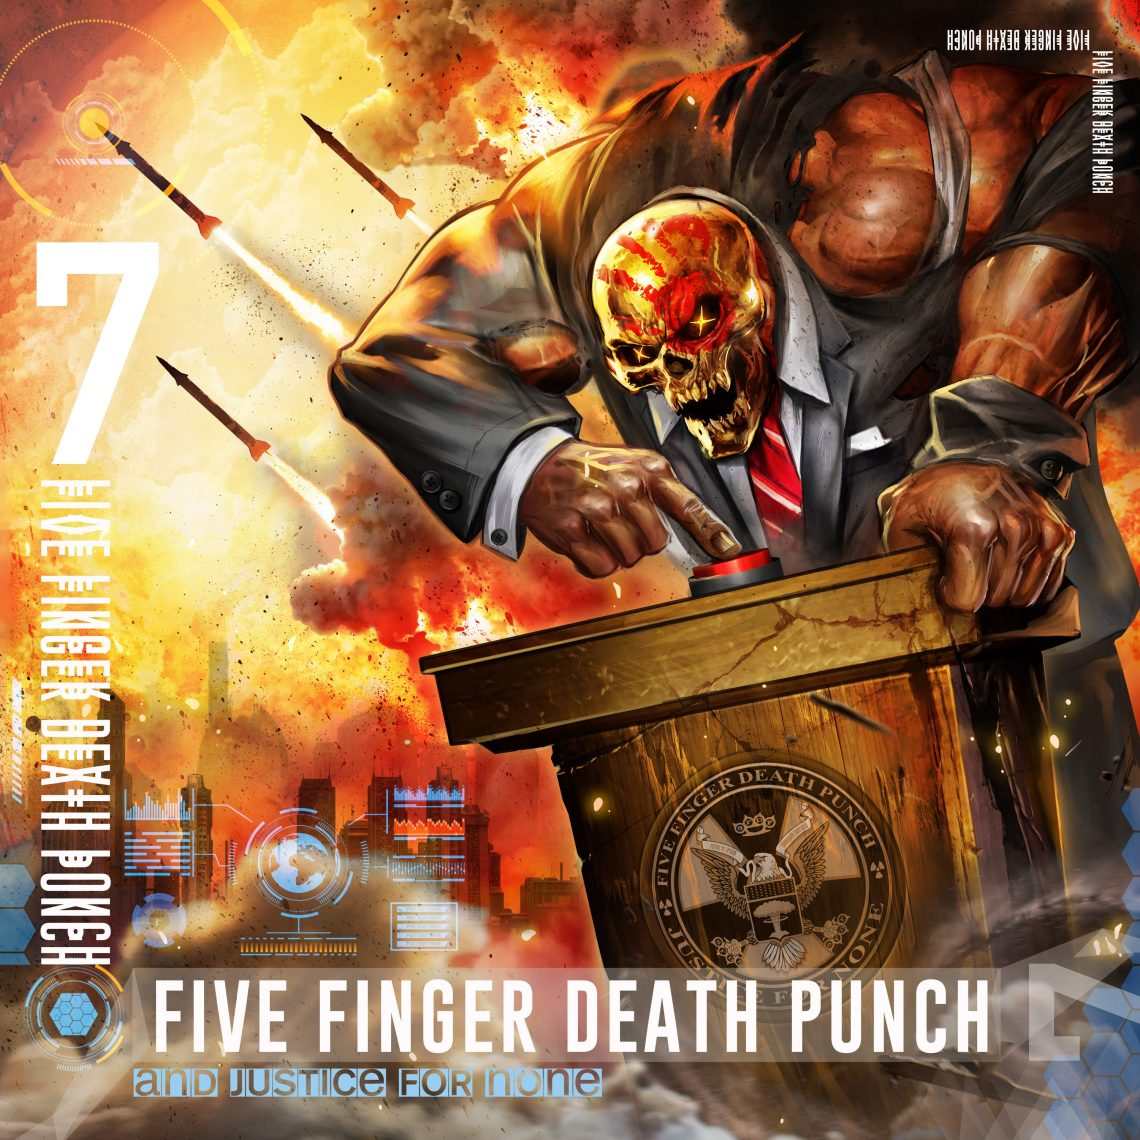 FIVE FINGER DEATH PUNCH reveal video for 'When The Seasons Change'